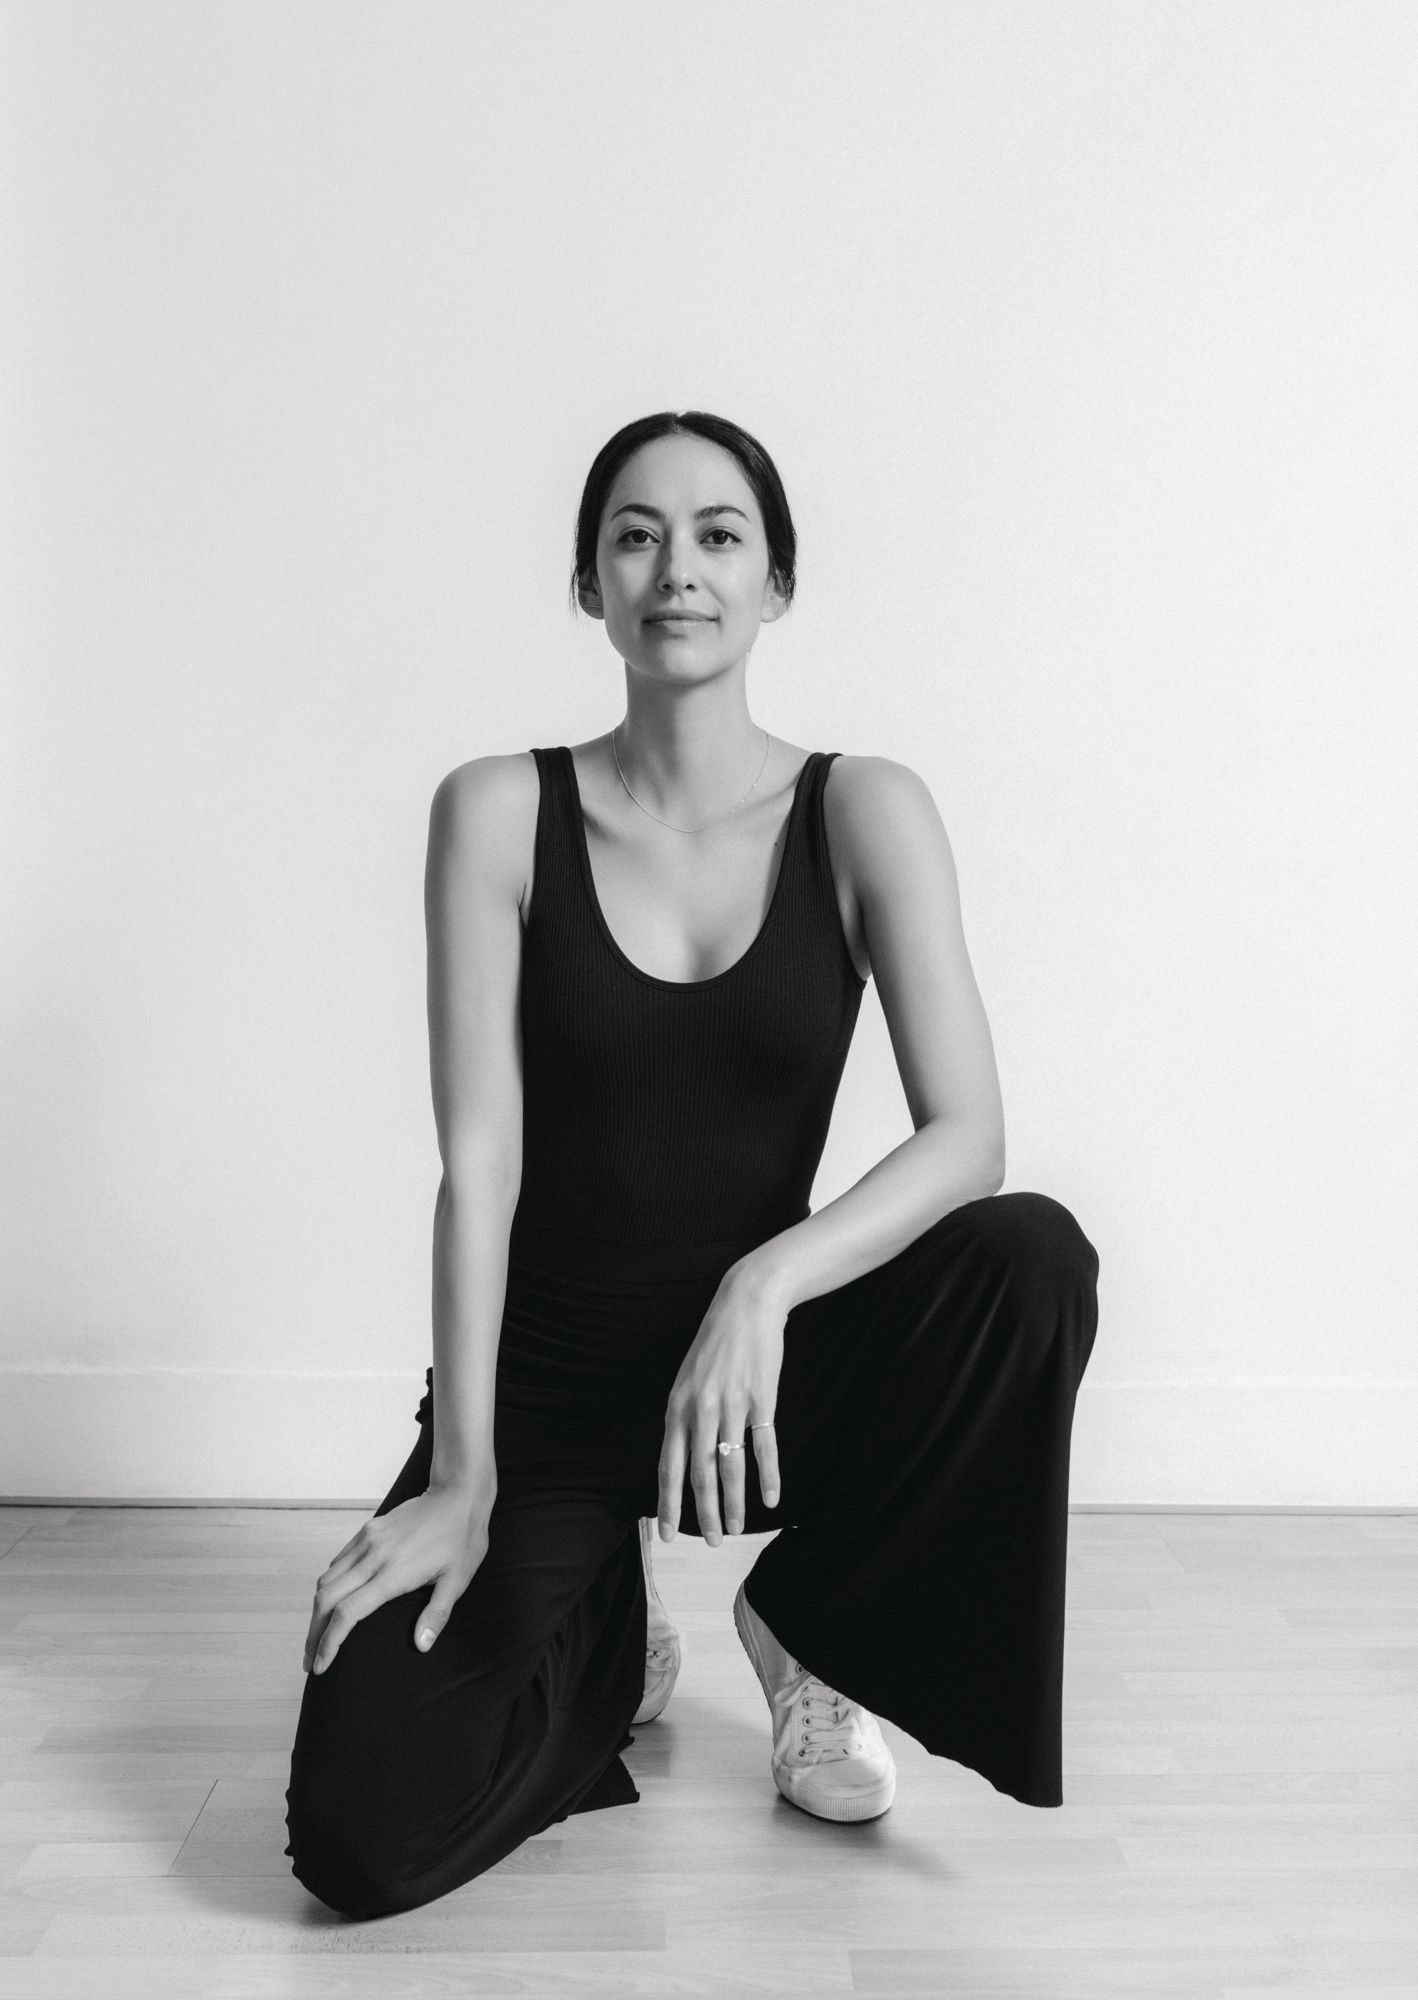 How To Be Kinder To Yourself, According To Yoga And Meditation Teacher Natalie Söderström